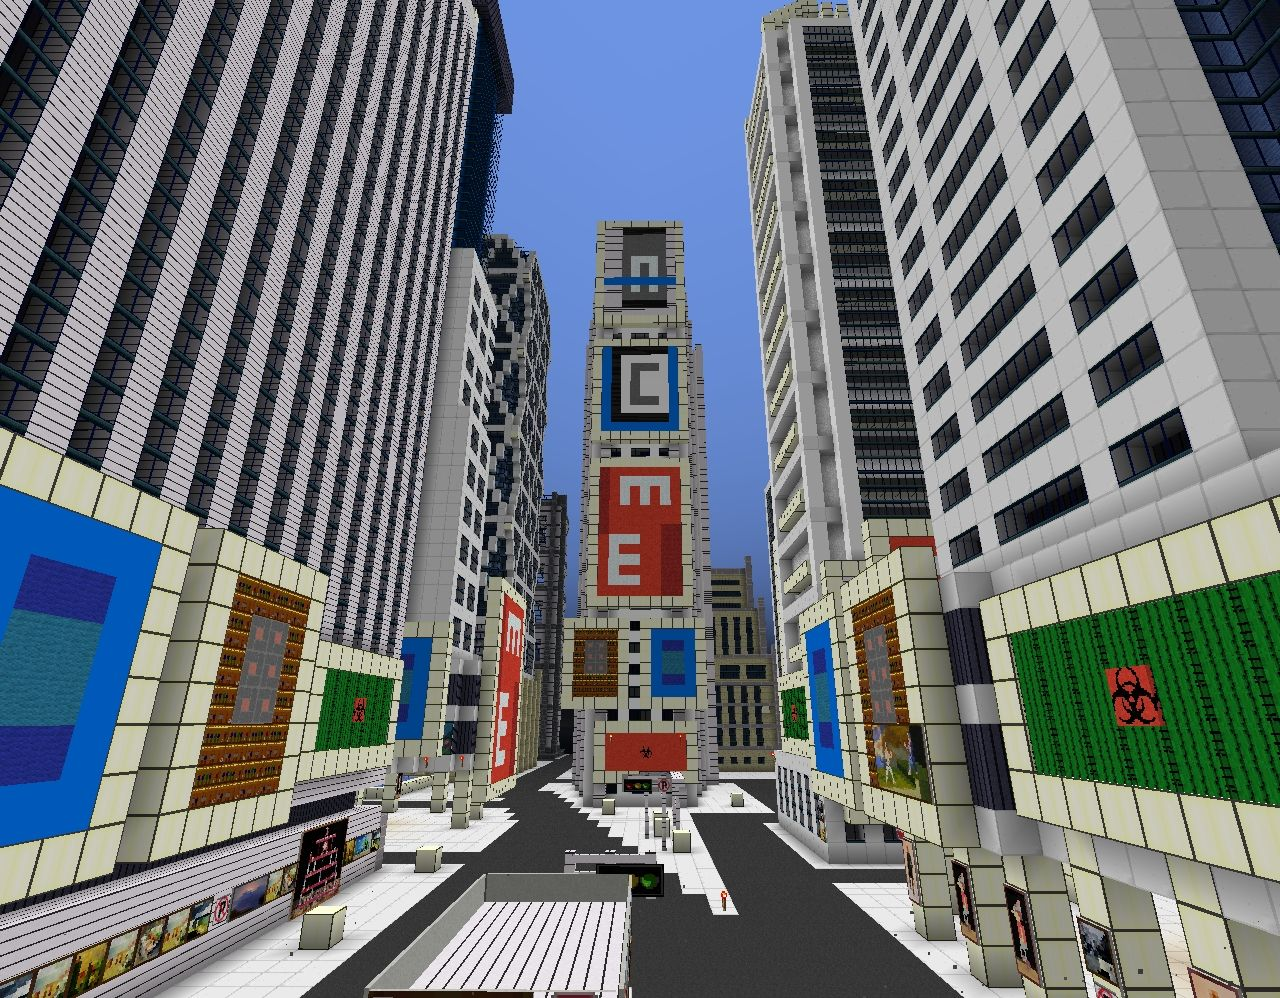 big wall maps with Munity Collection Project New York on Hawaiian Islands Chain in addition The Big Orange Snake Shanghai Metro Line 7 Sneak Preview likewise Spidermonkey furthermore The Ceranese Hotel Minecrafts Largest Hotel also Warucia Castle.